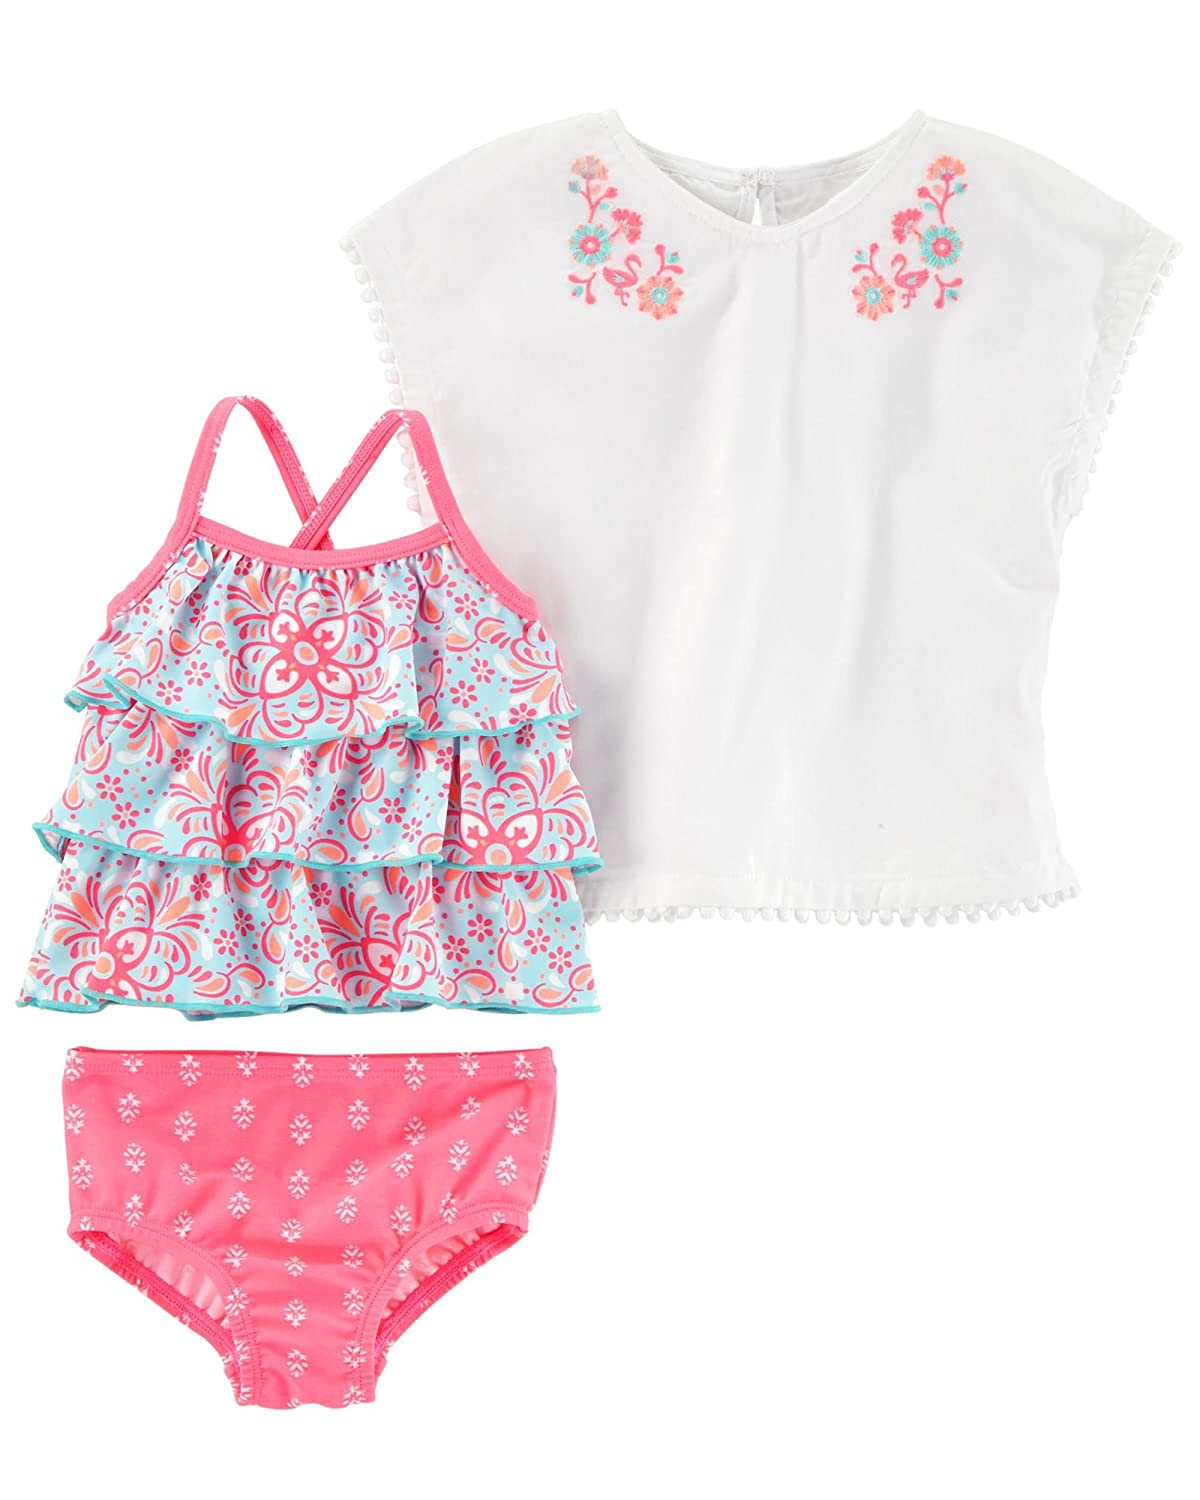 Carter's Baby Girls' 3-Piece Printed Swim Set and Cover-Up Set